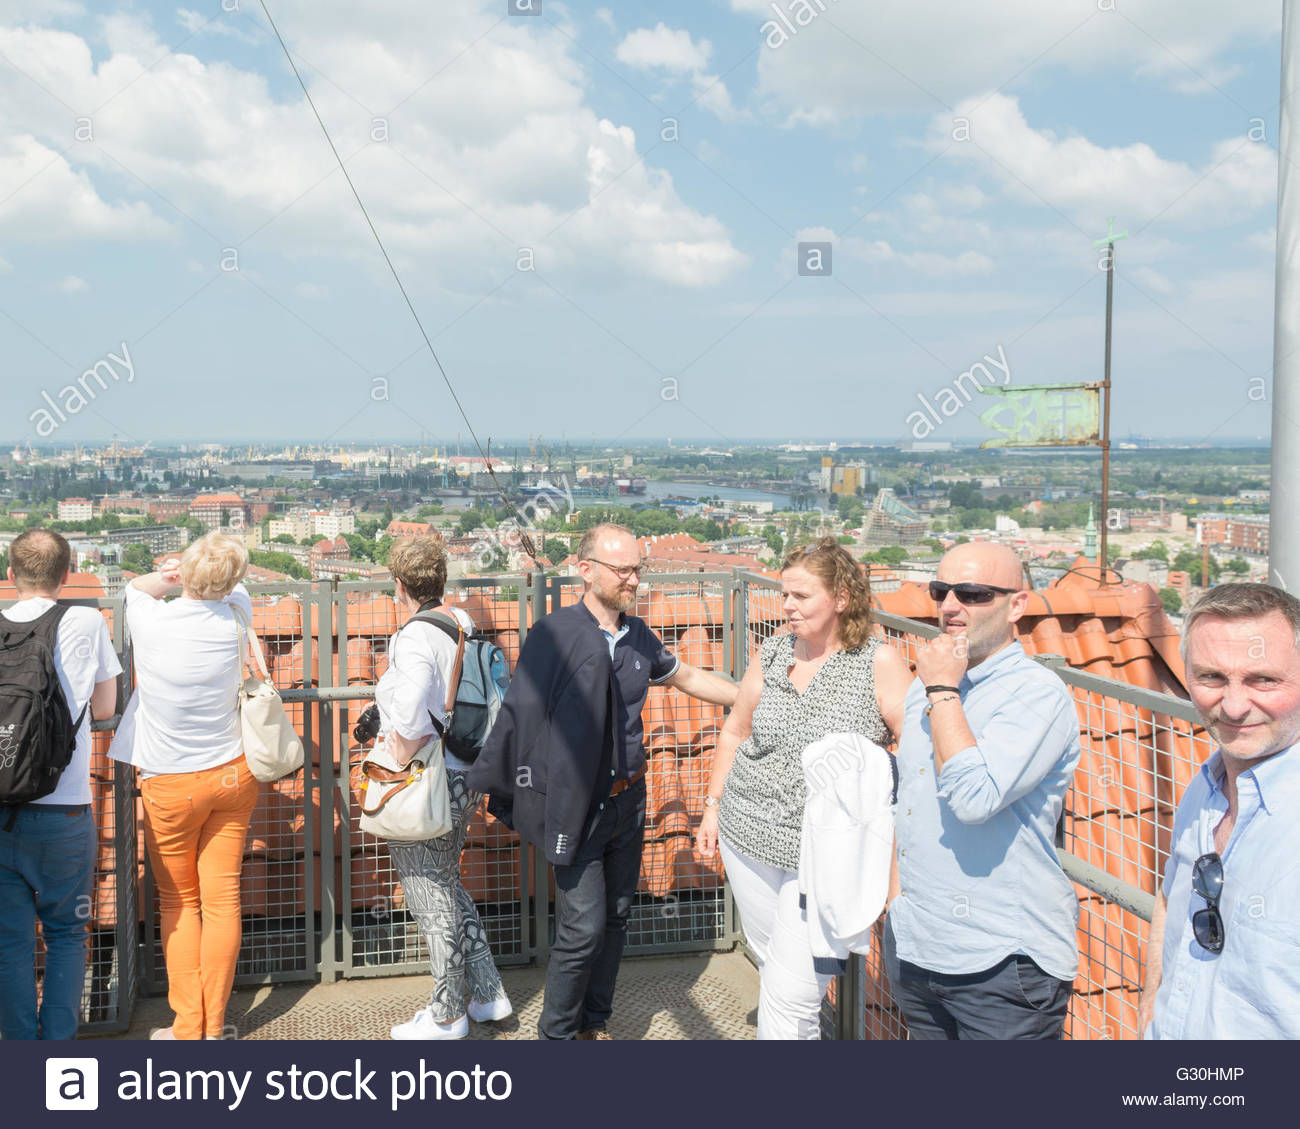 St Mary's Church, Gdansk, Poland - People tourists enjoying the views of Gdansk from the 78 metre high tower - Stock Image